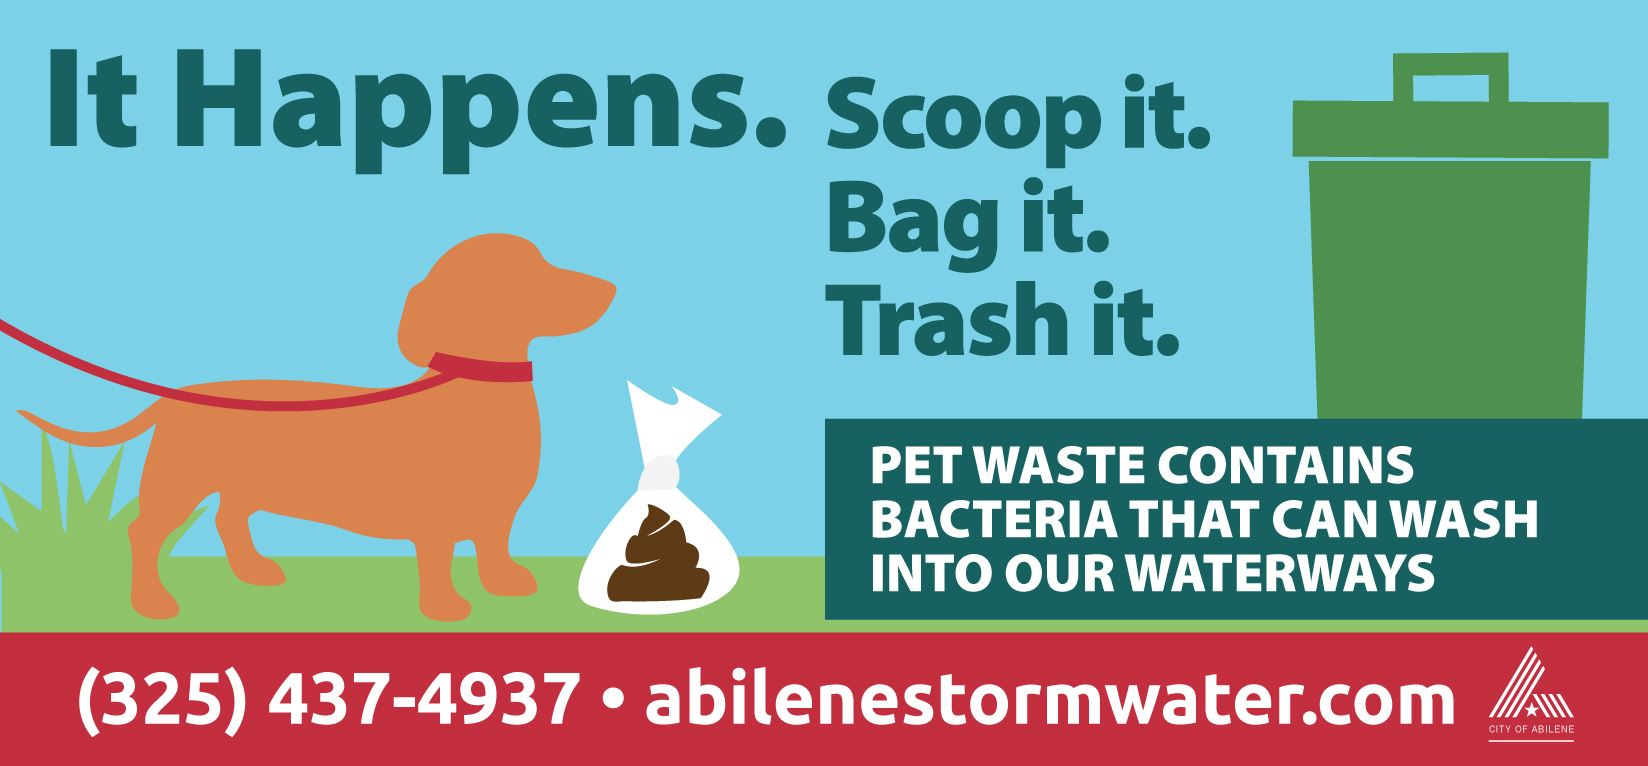 Pet Waste Contains Bacteria That Can Wash into Our Waterways